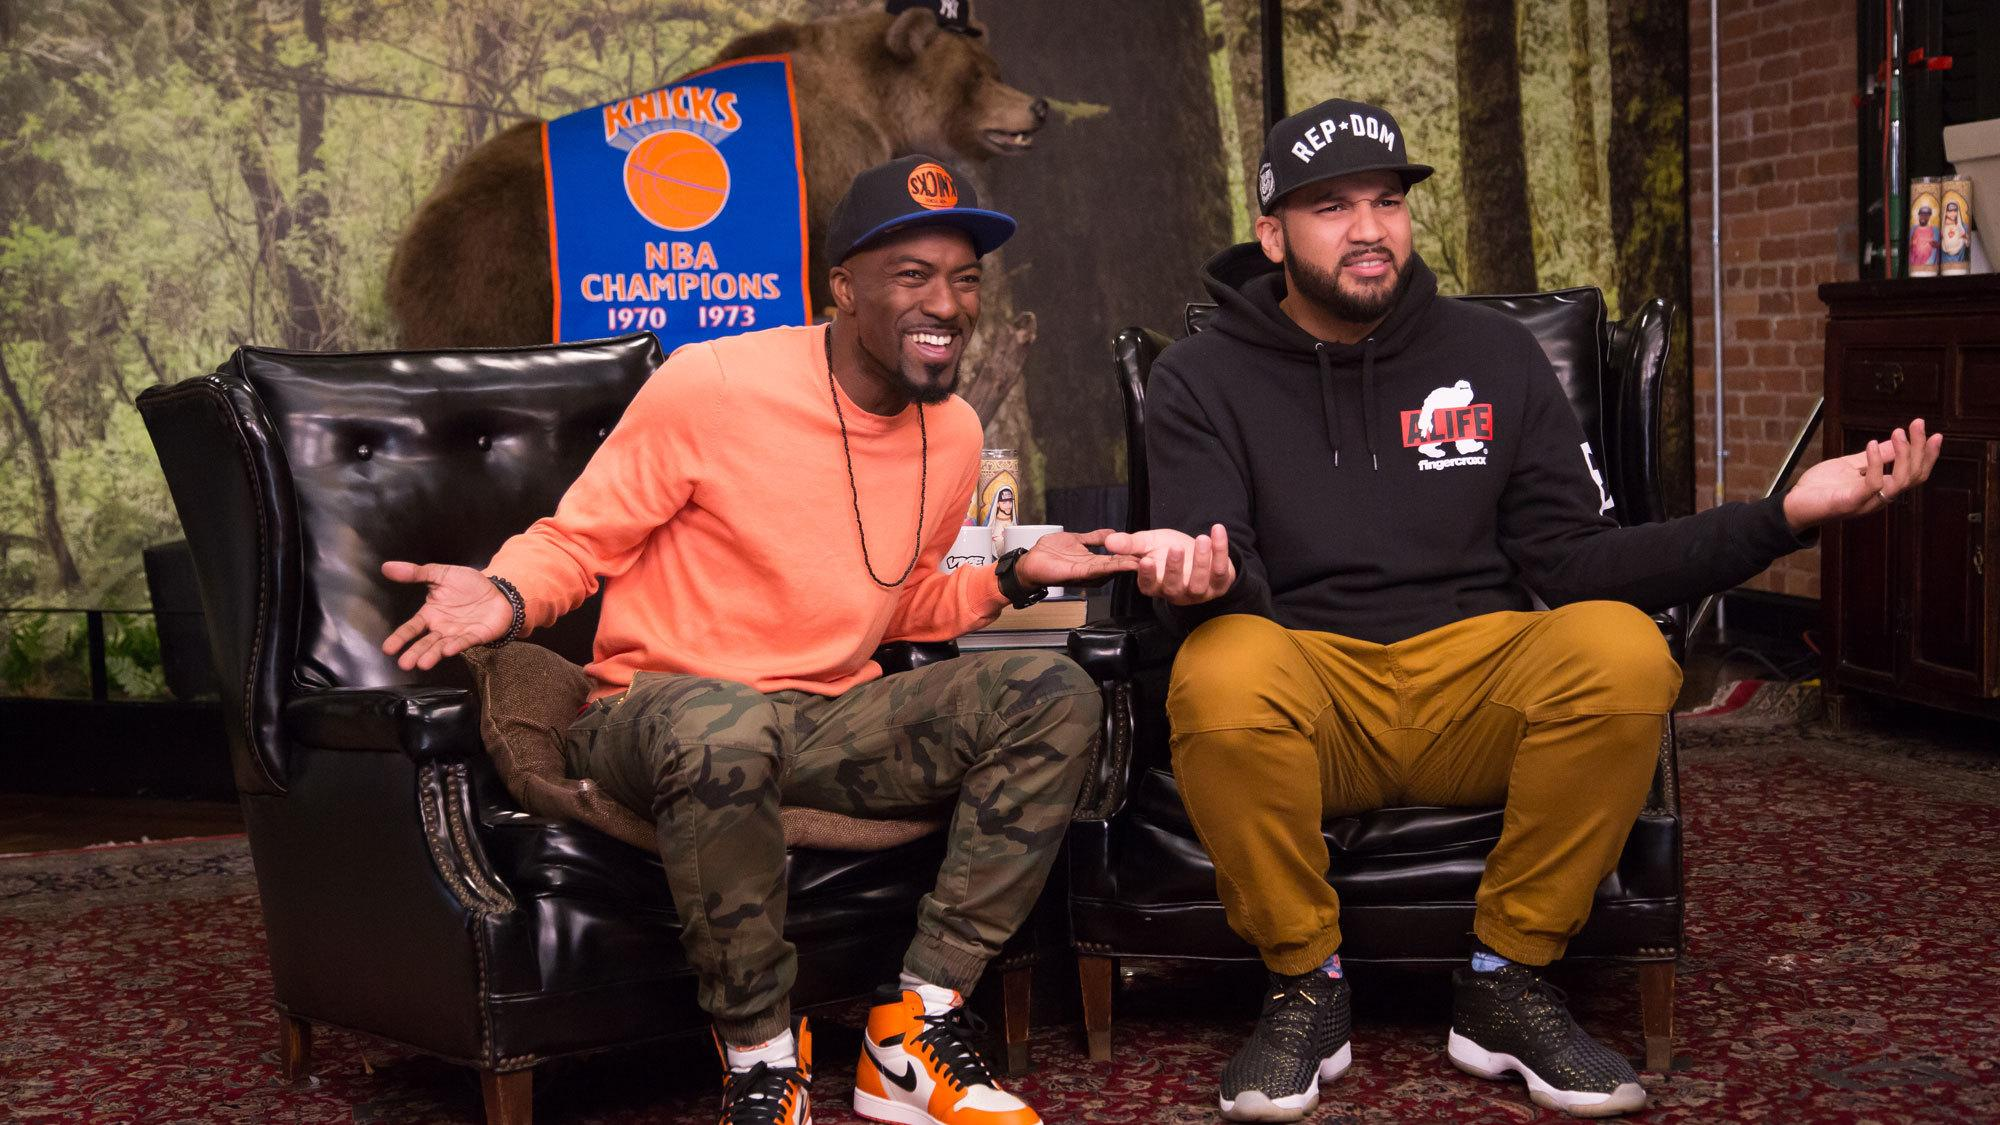 desus-and-mero-prove-why-its-hard-to-be-a-ride-or-die-knicks-fan-1477487491